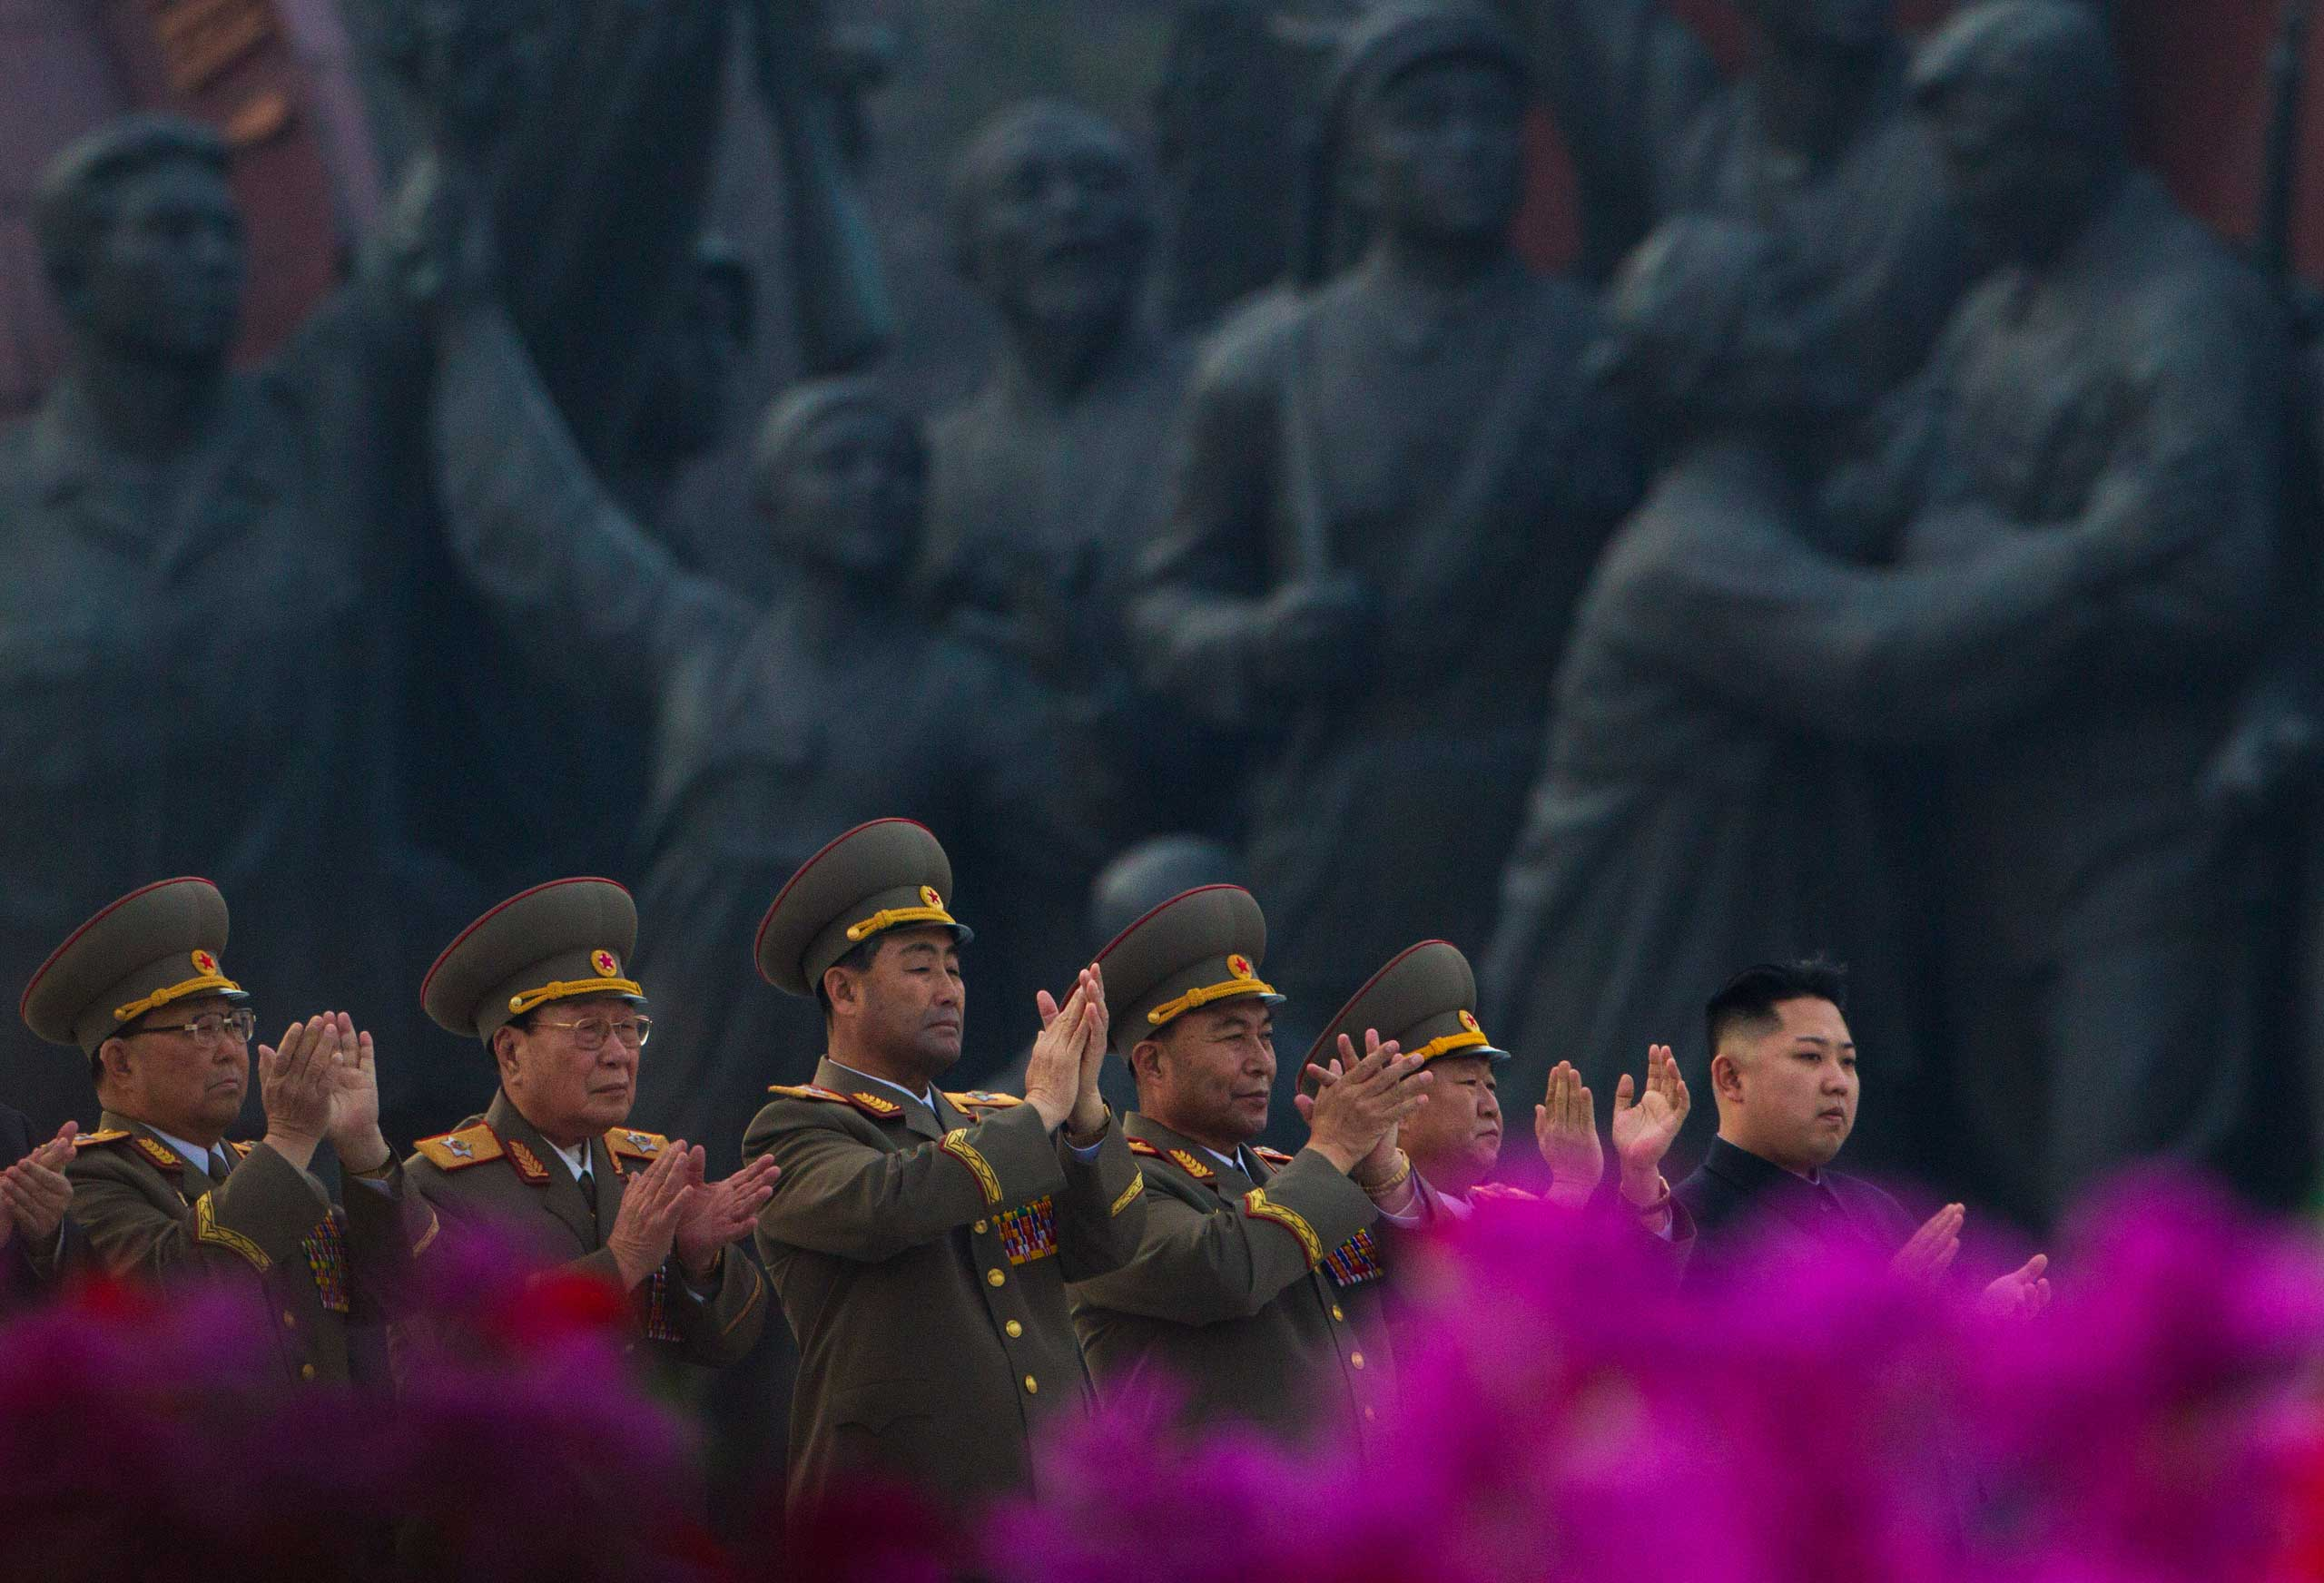 April 13, 2012. North Korean leader Kim Jong Un, far right, applauds with senior military officials as citizens wave flowers at an unveiling ceremony for statues of the late leaders Kim Il-Sung and Kim Jong-Il in Pyongyang.